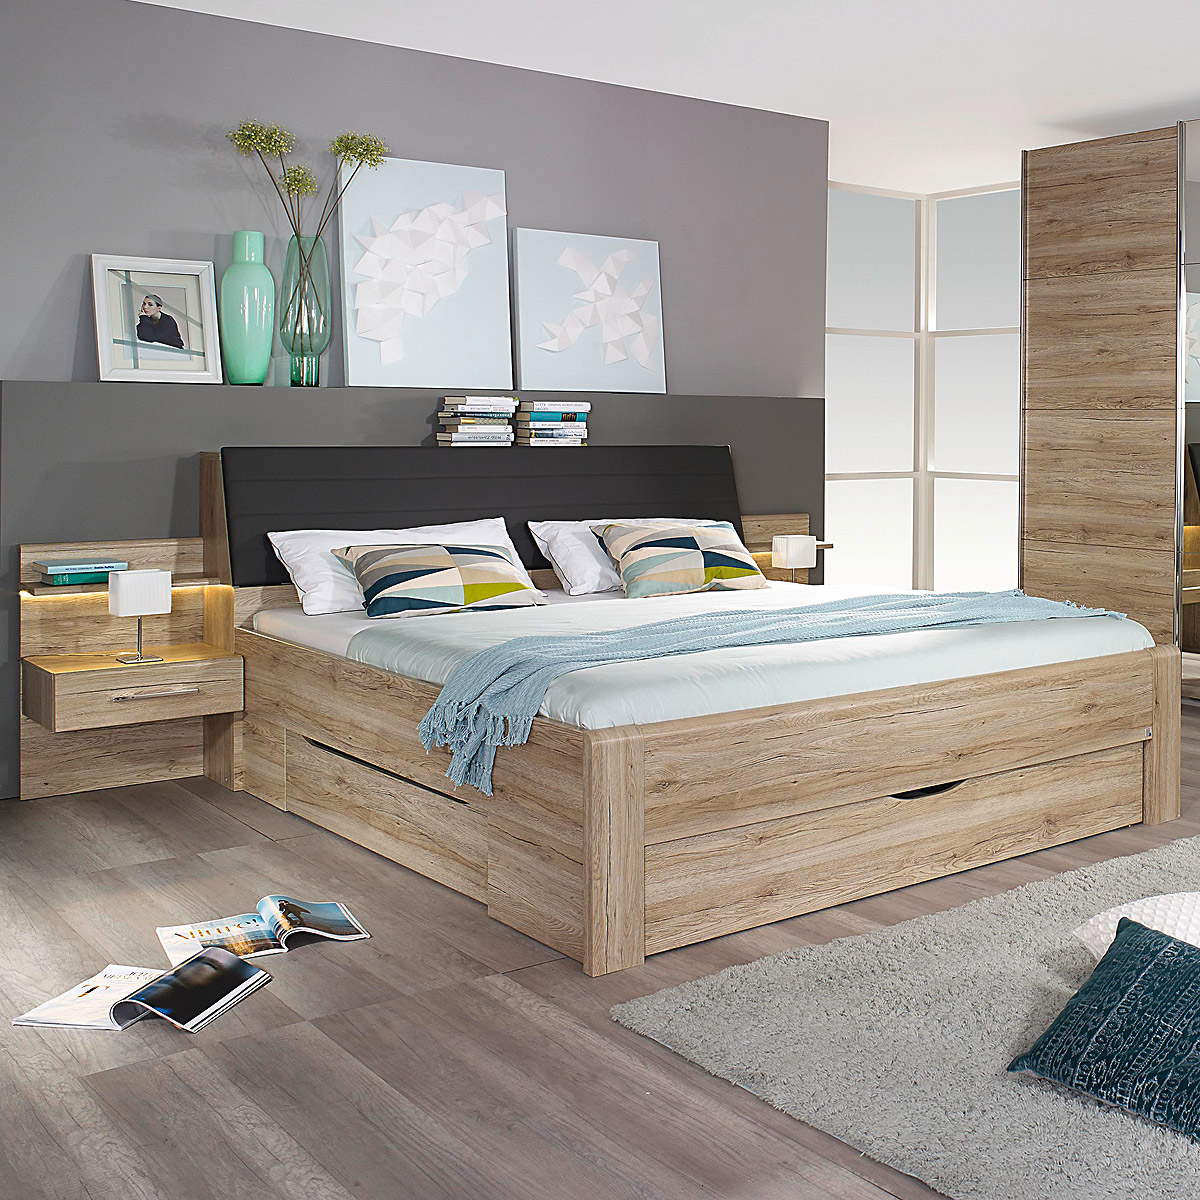 bettanlage bensheim eiche sanremo hell inkl nachtkonsolen 180x200 cm ebay. Black Bedroom Furniture Sets. Home Design Ideas